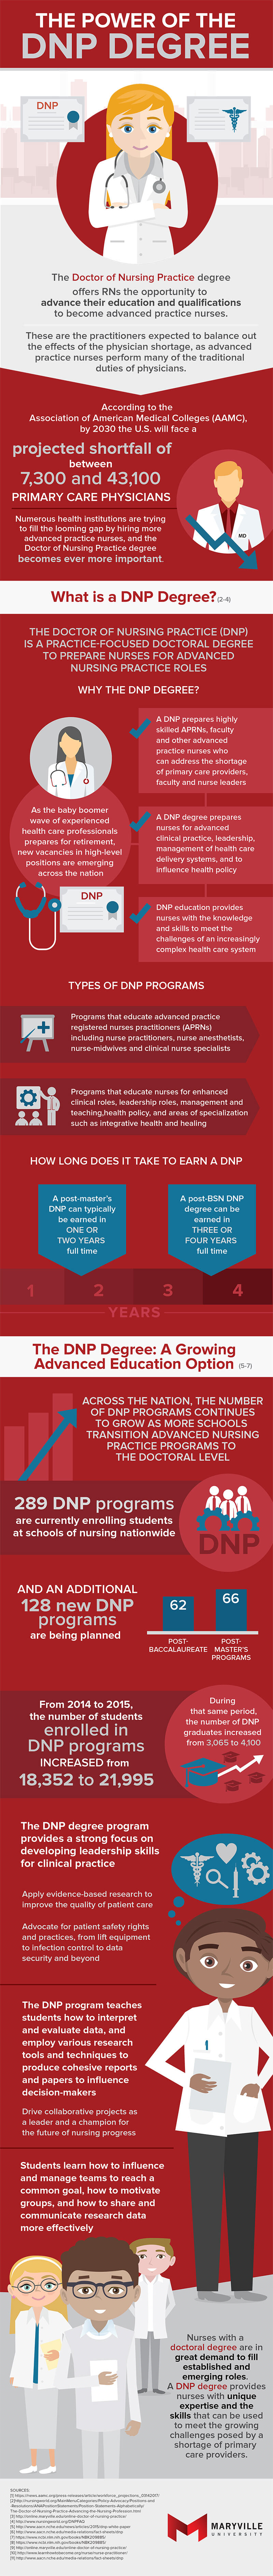 The Power of the DNP Degree Infographic